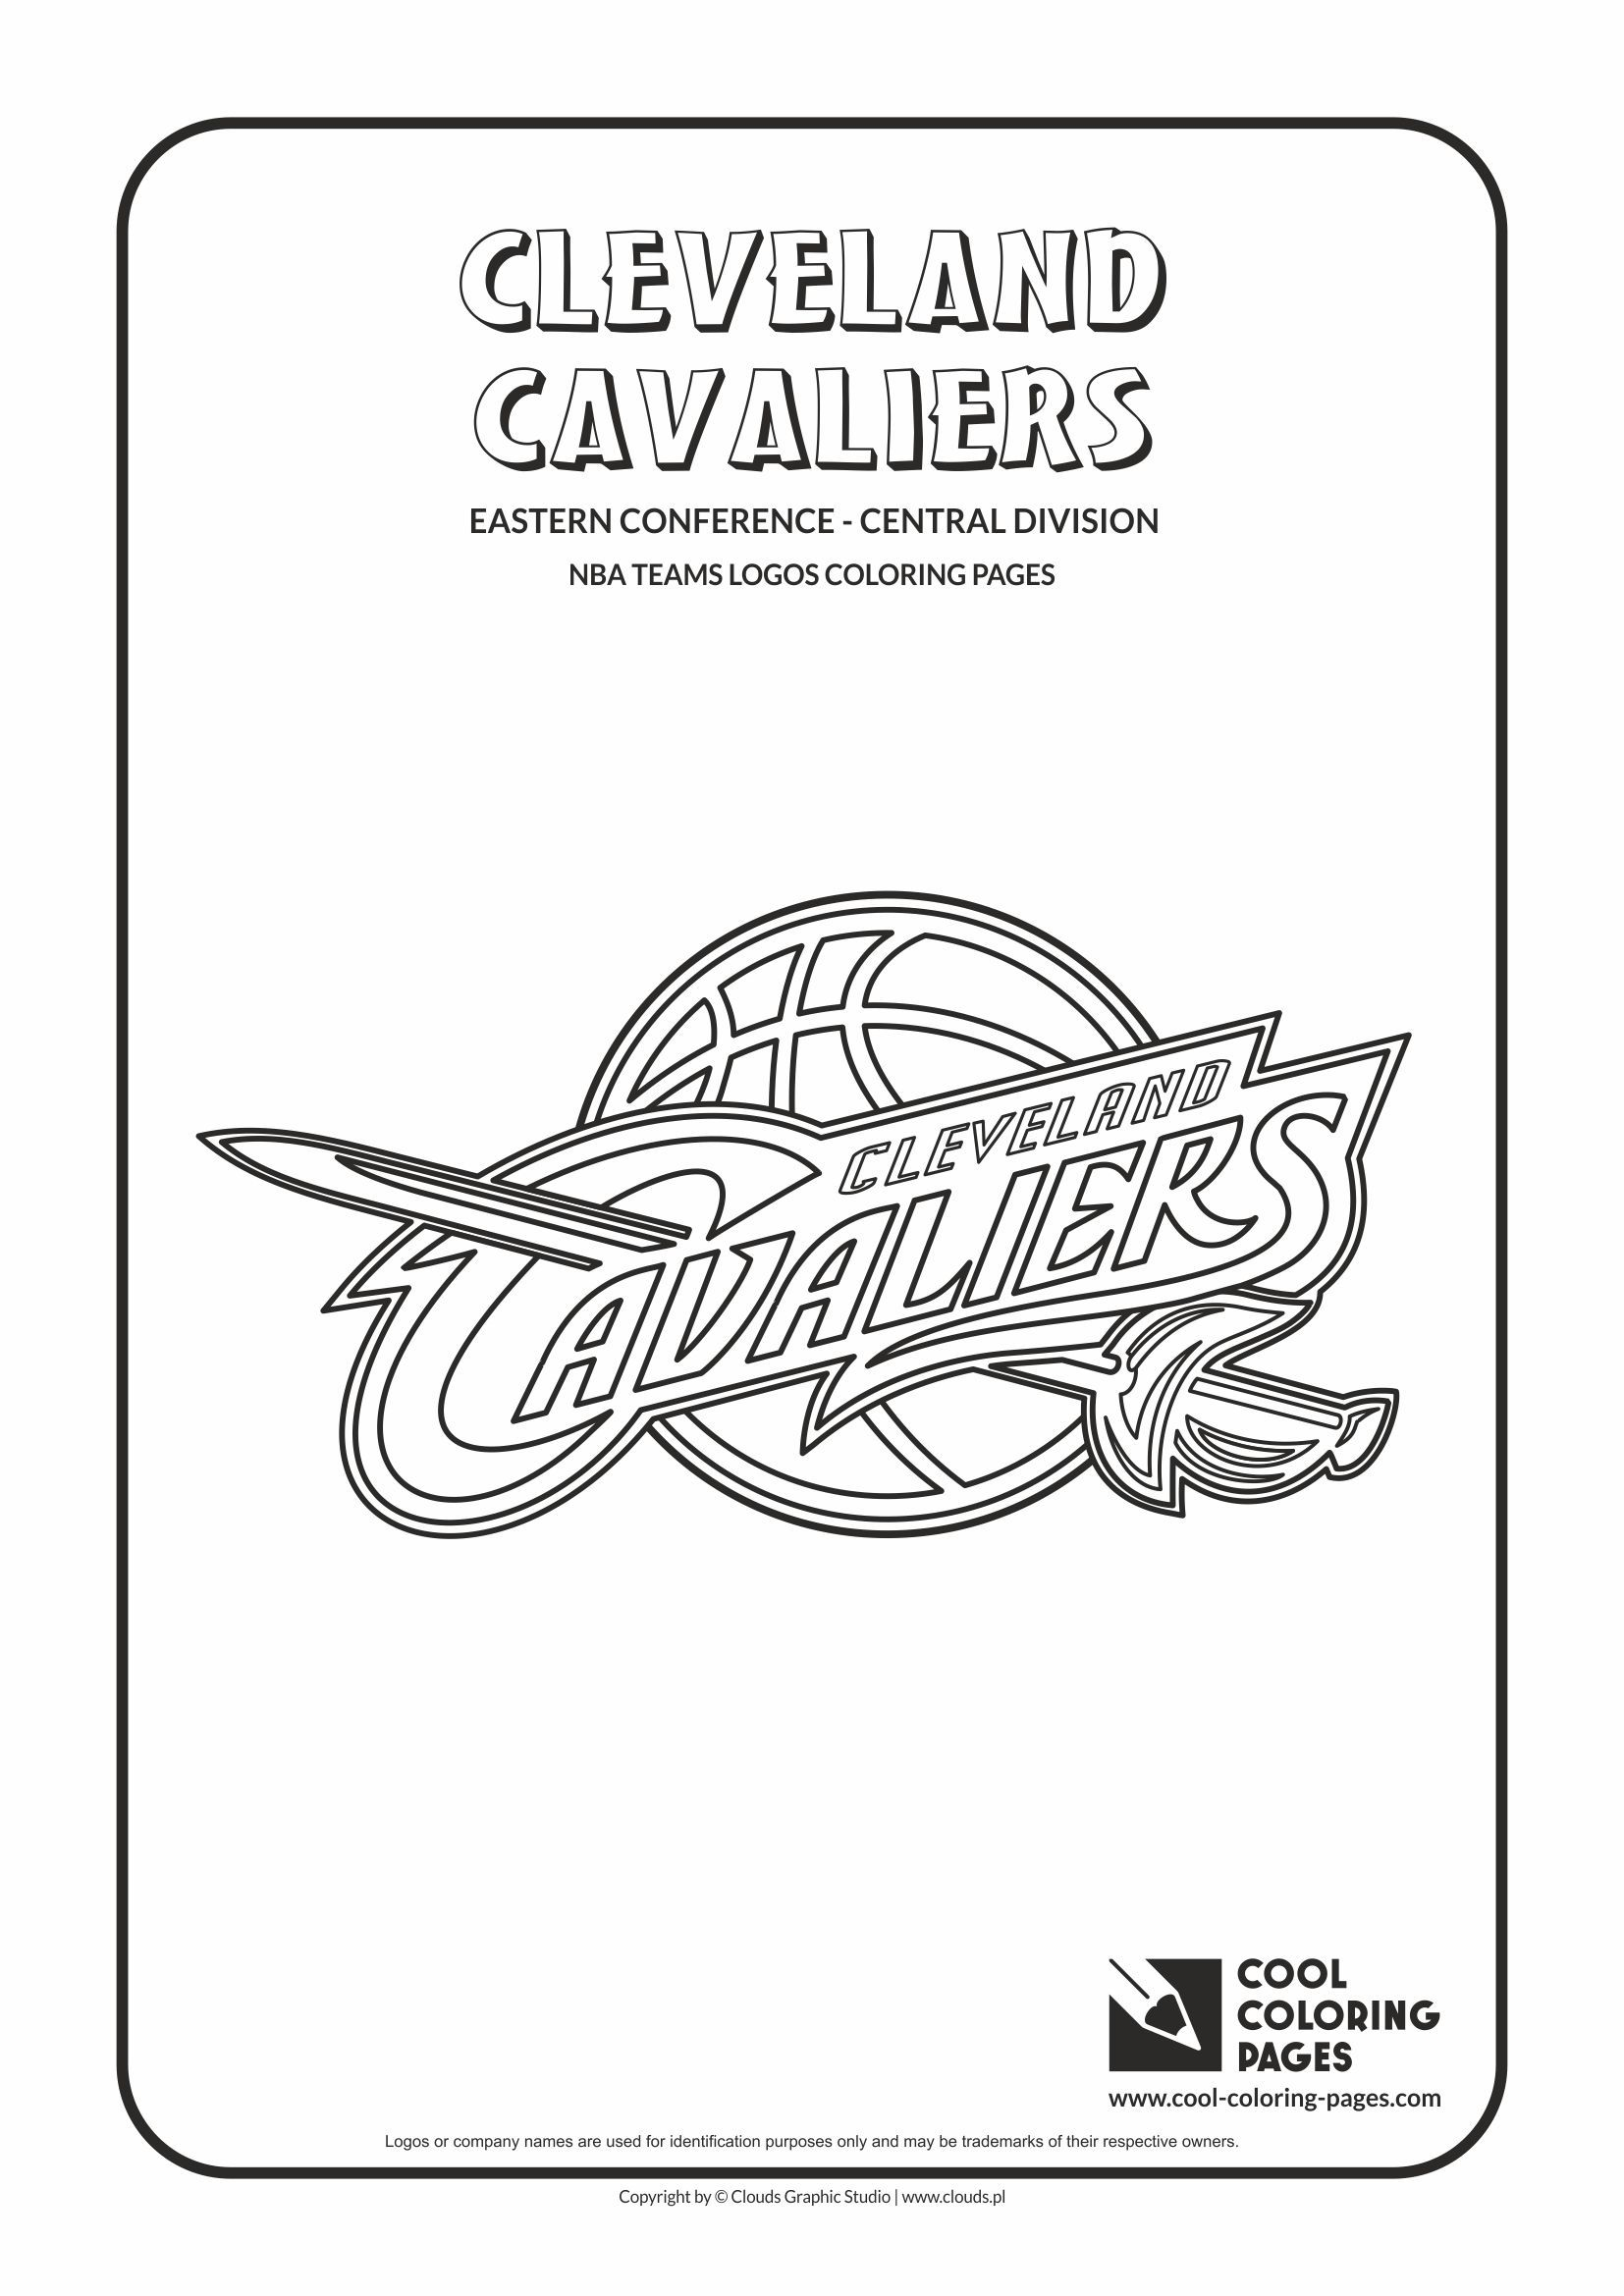 cool coloring pages nba logo coloring pages national